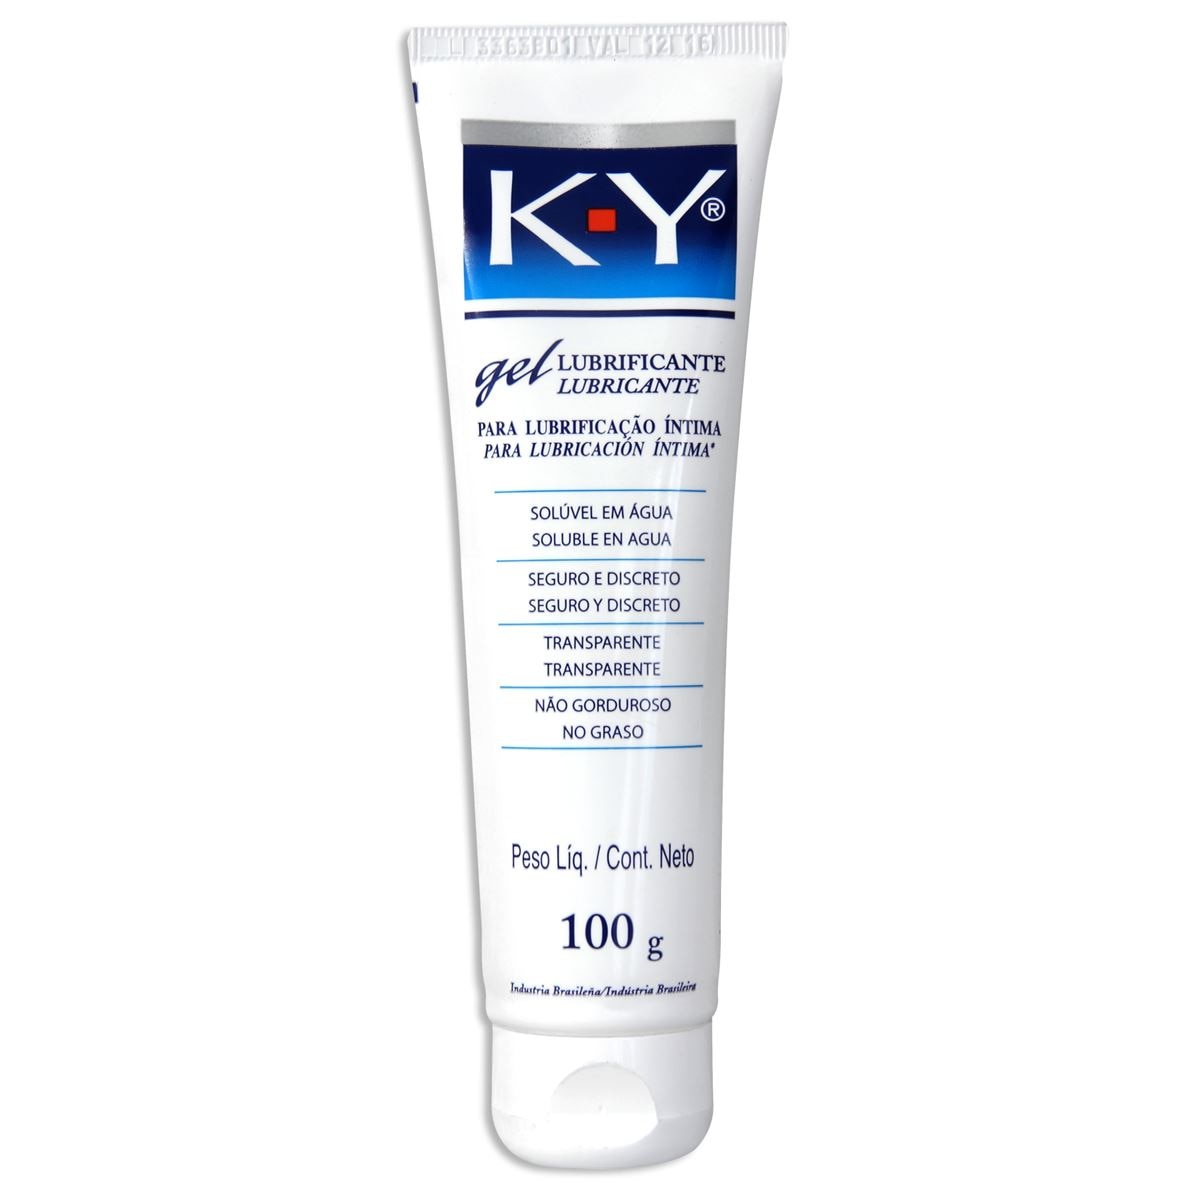 Ky jelly gel lubricante 100g  - Sanborns